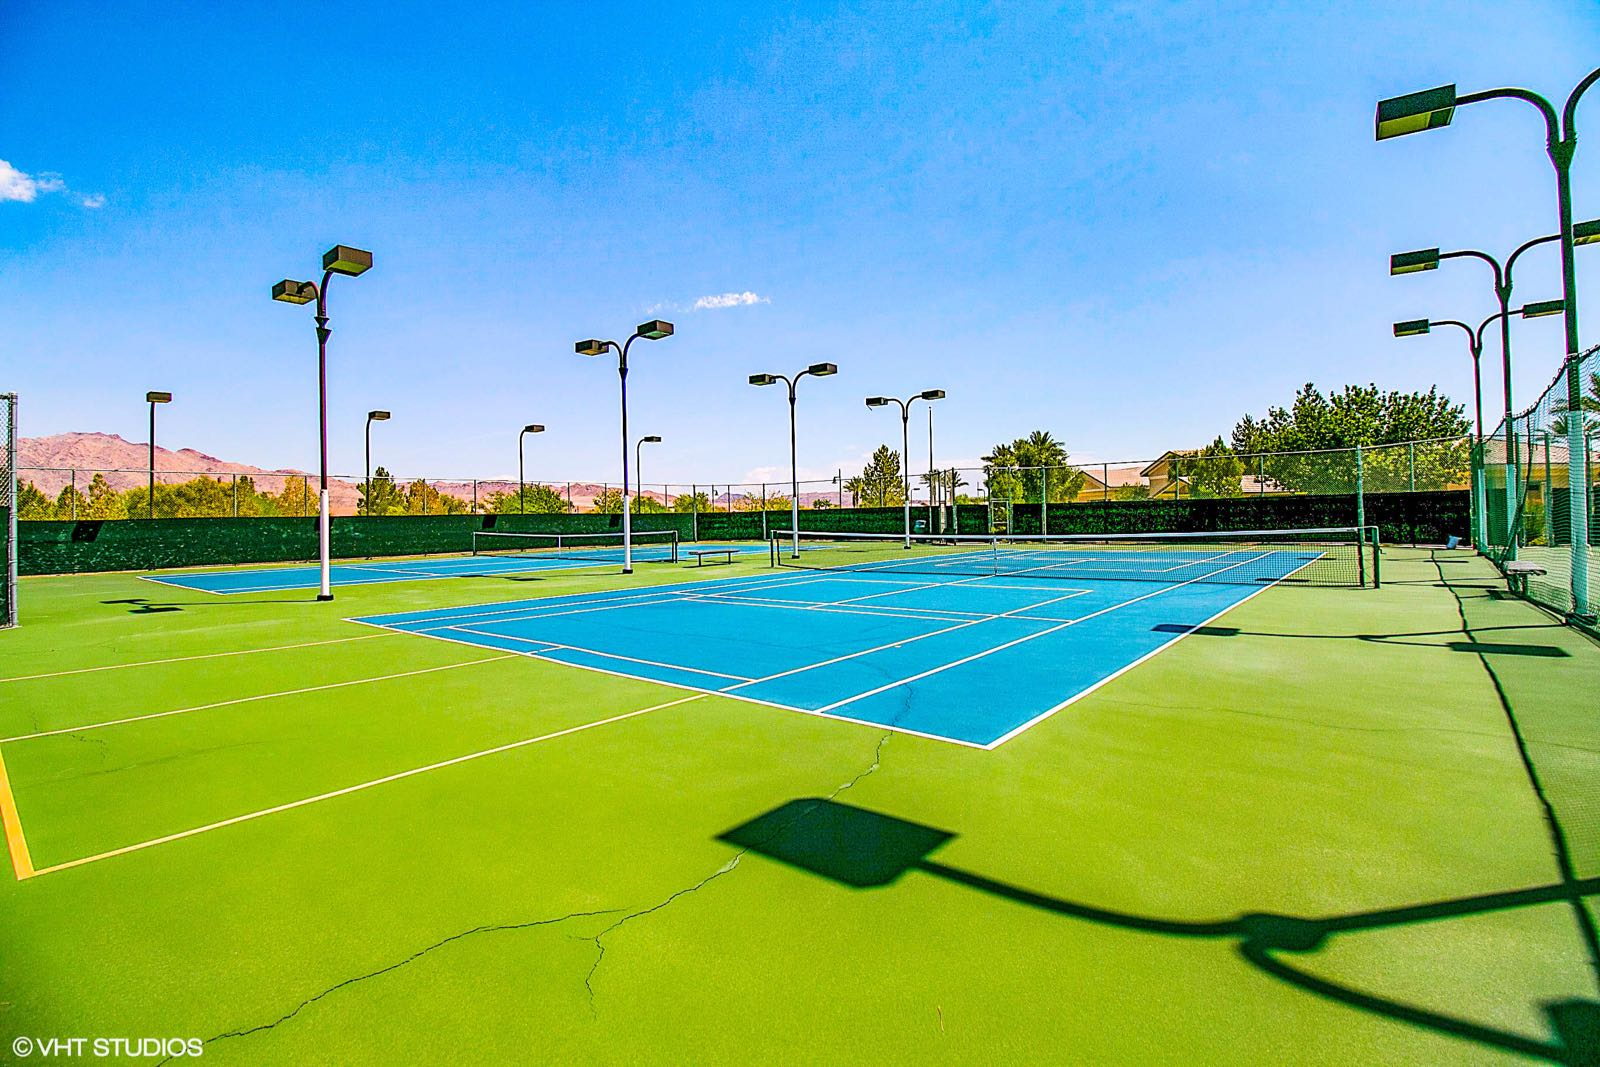 3 Tennis & Pickleball Courts